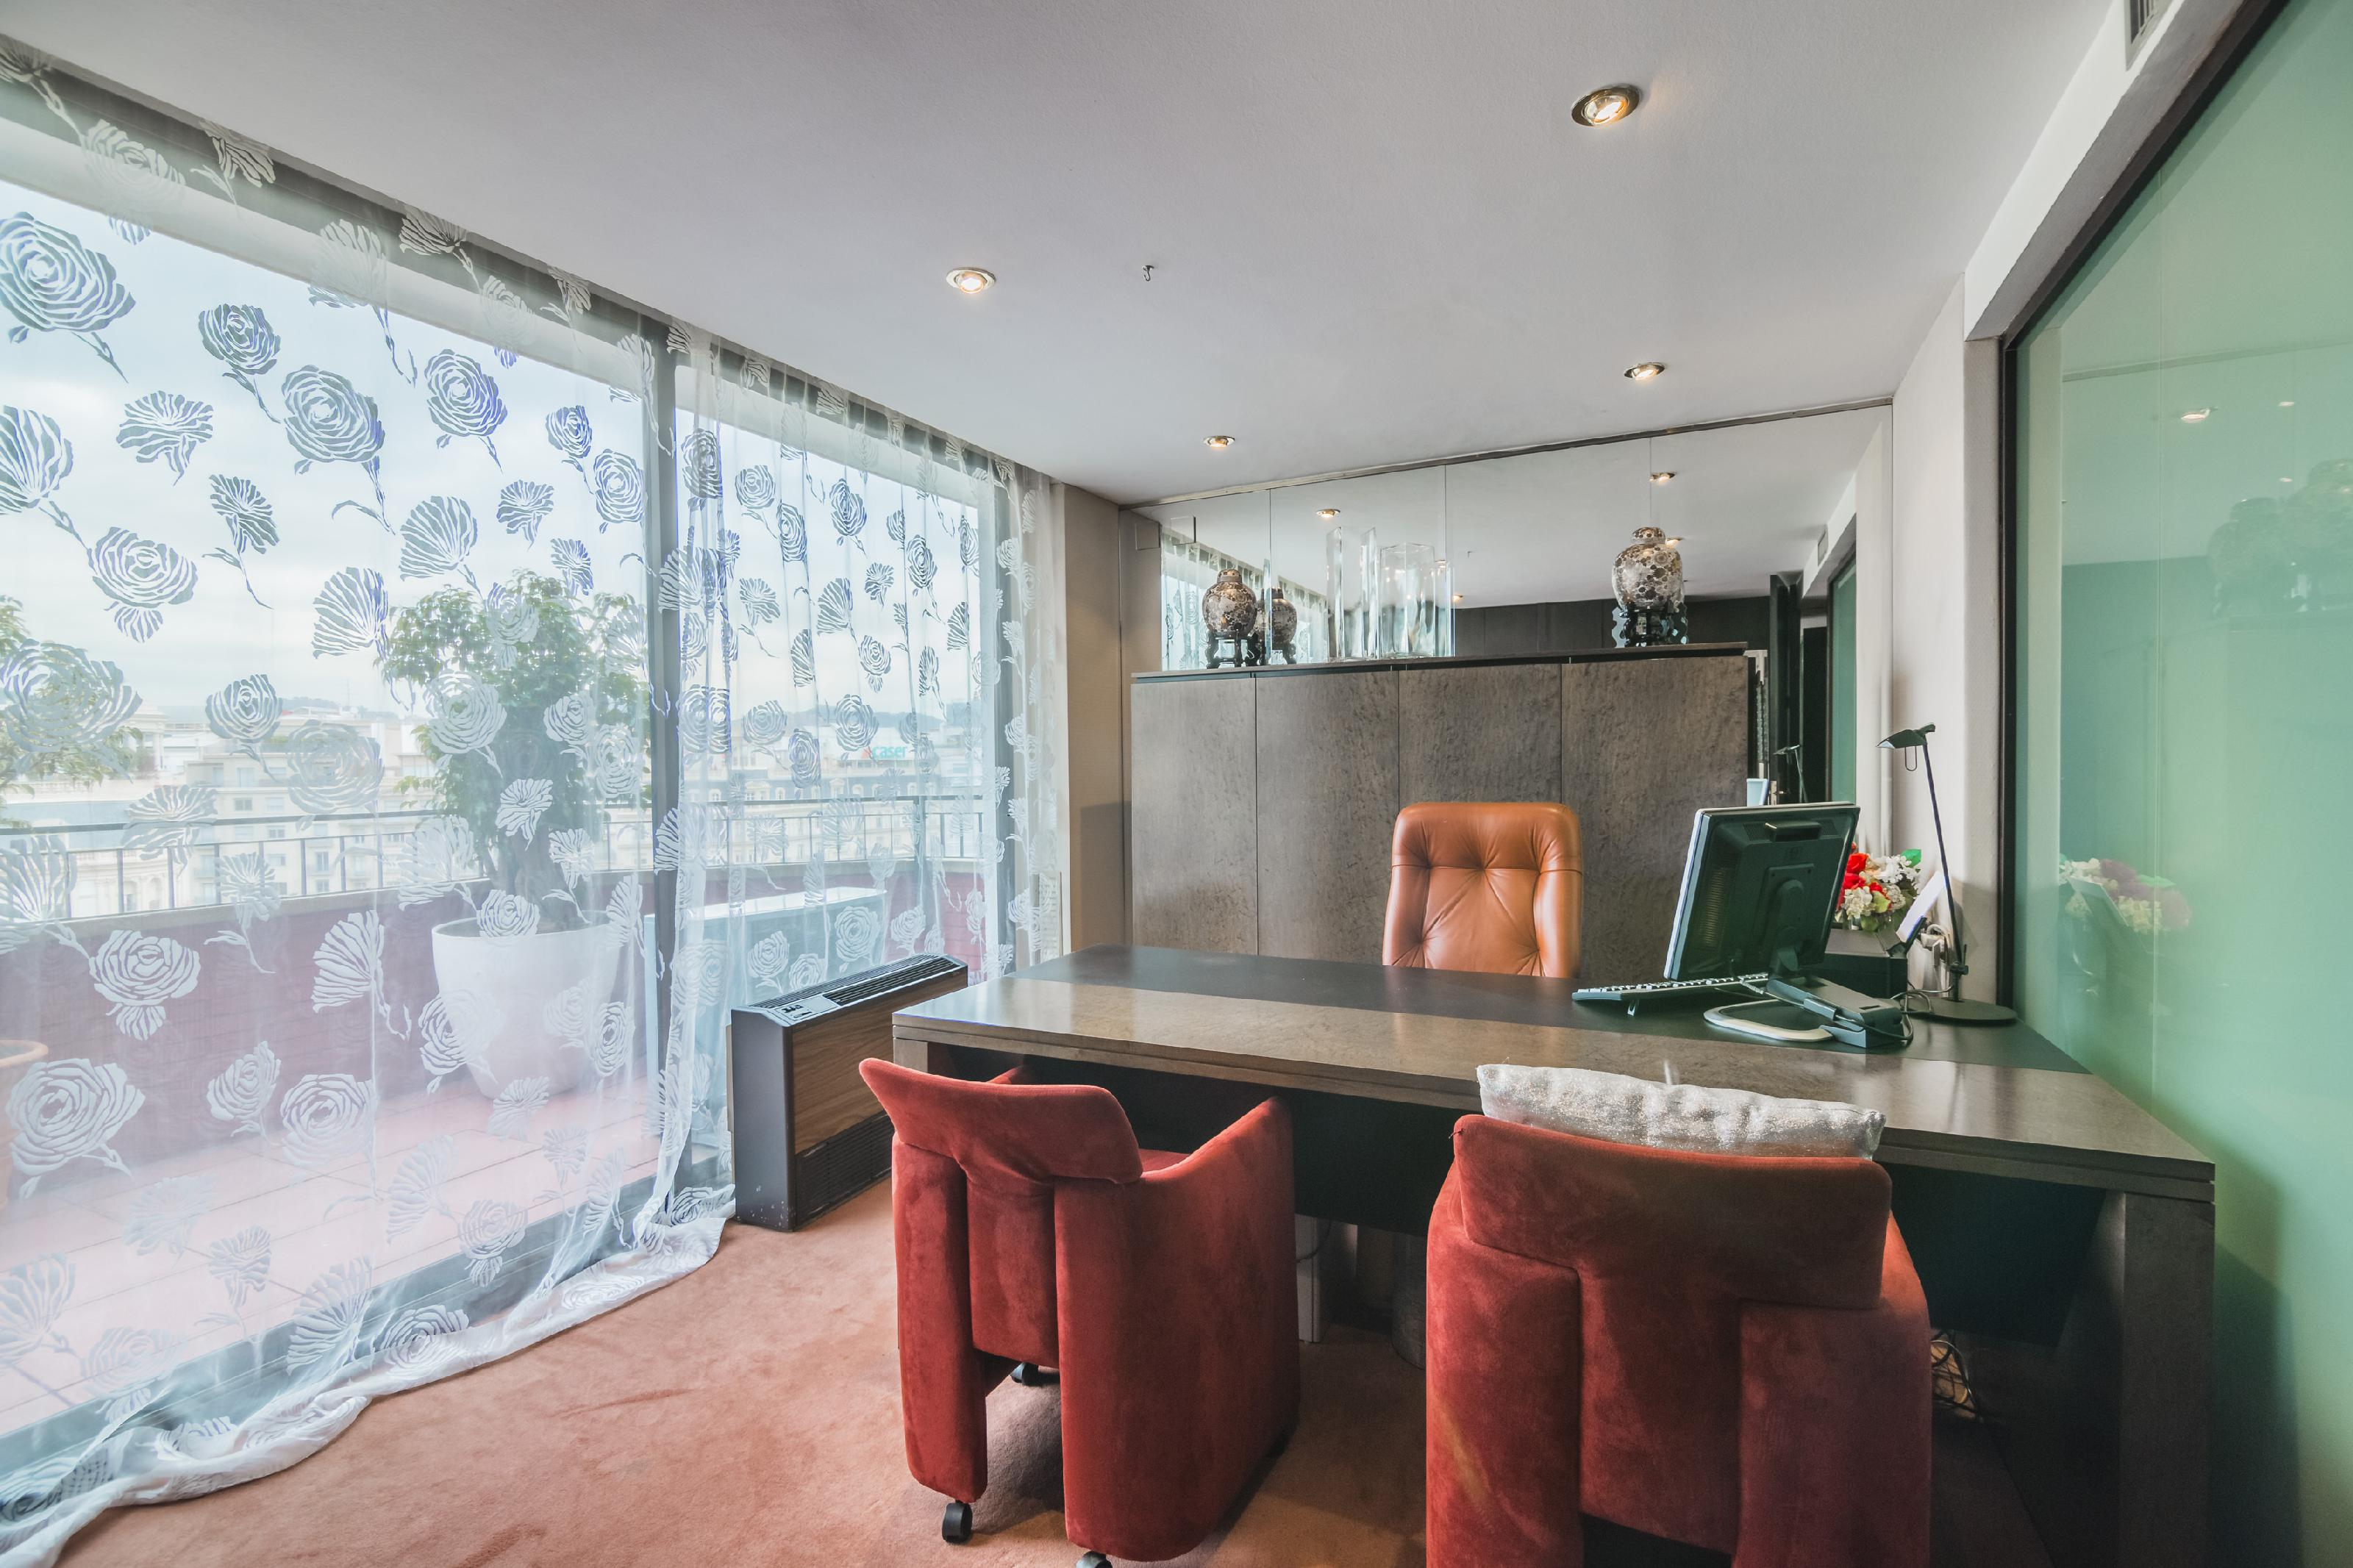 223855 Penthouse for sale in Sarrià-Sant Gervasi, Sant Gervasi-Galvany 4